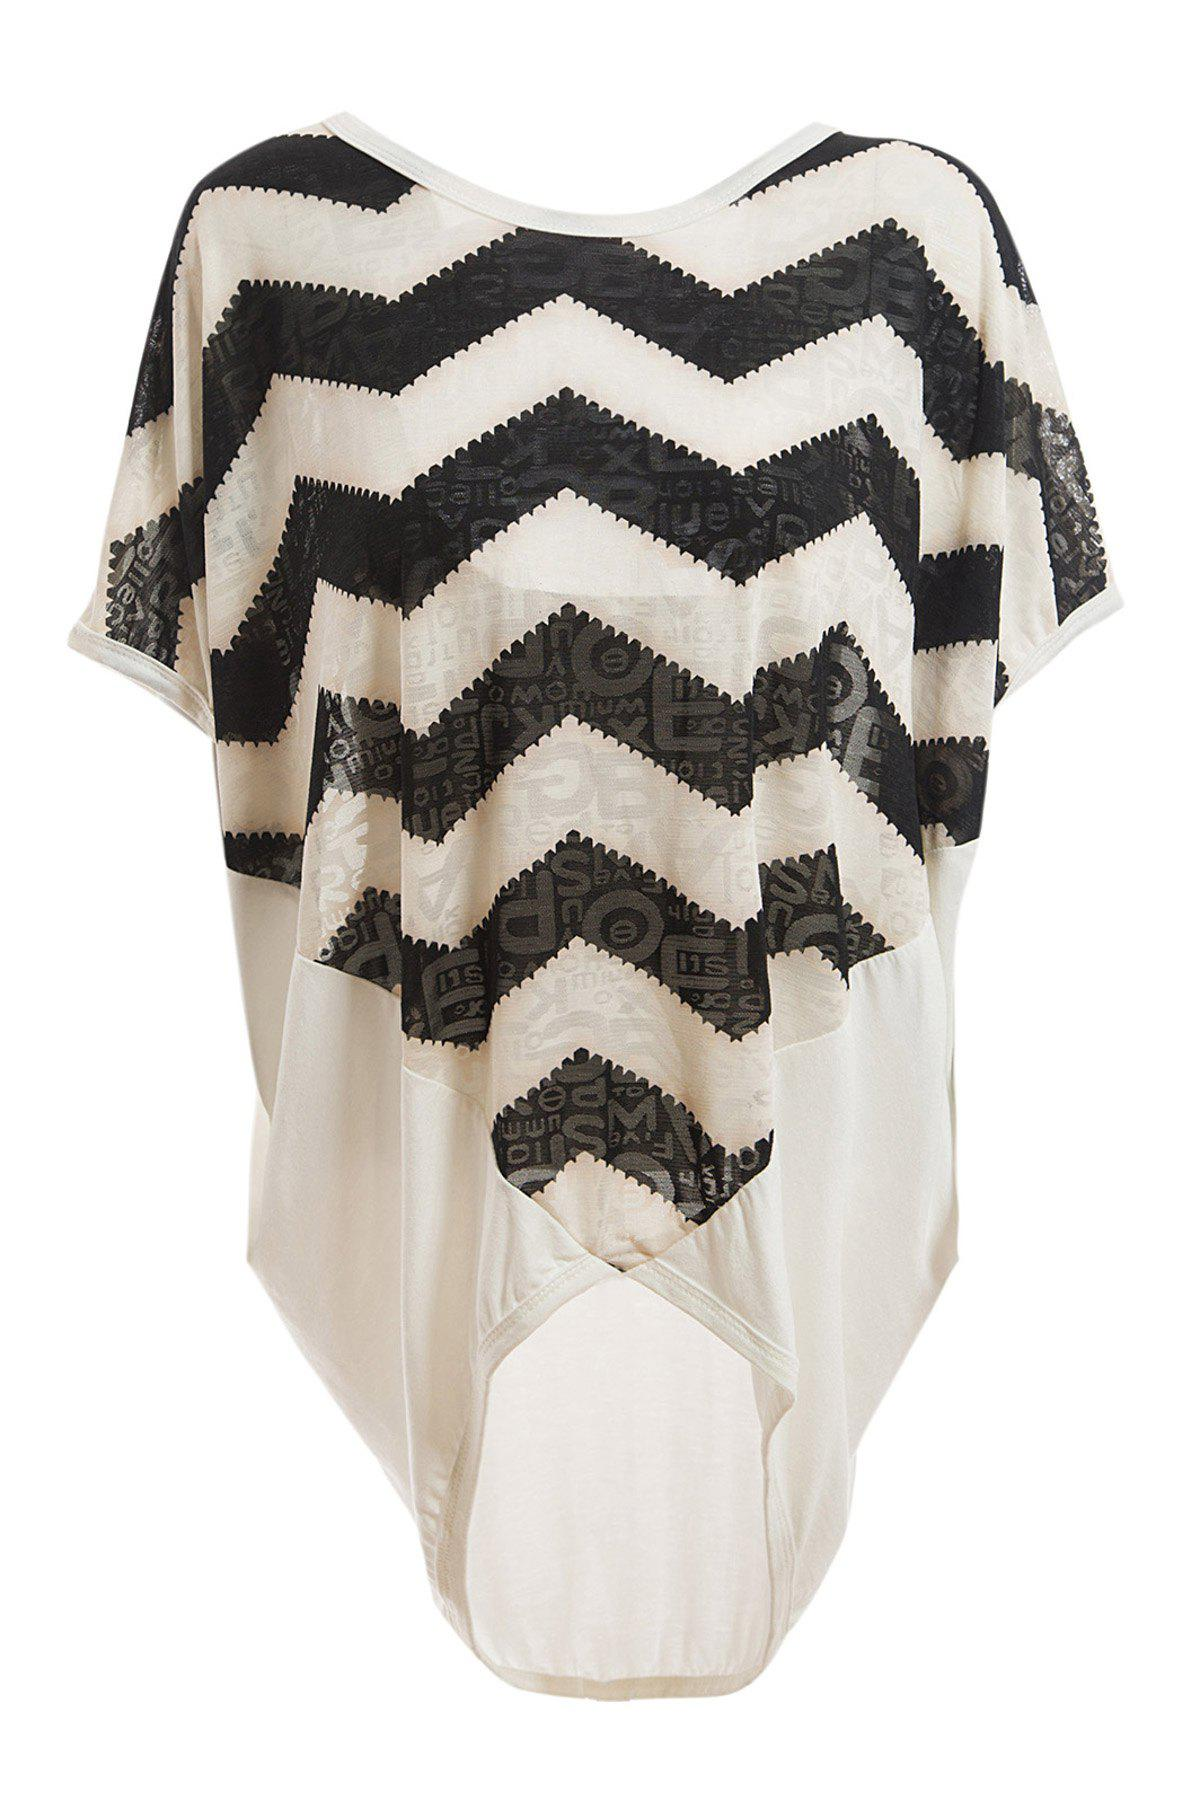 Women's Loose-Fitting Scoop Neck Sawtooth Print Batwing Sleeve Blouse - WHITE L